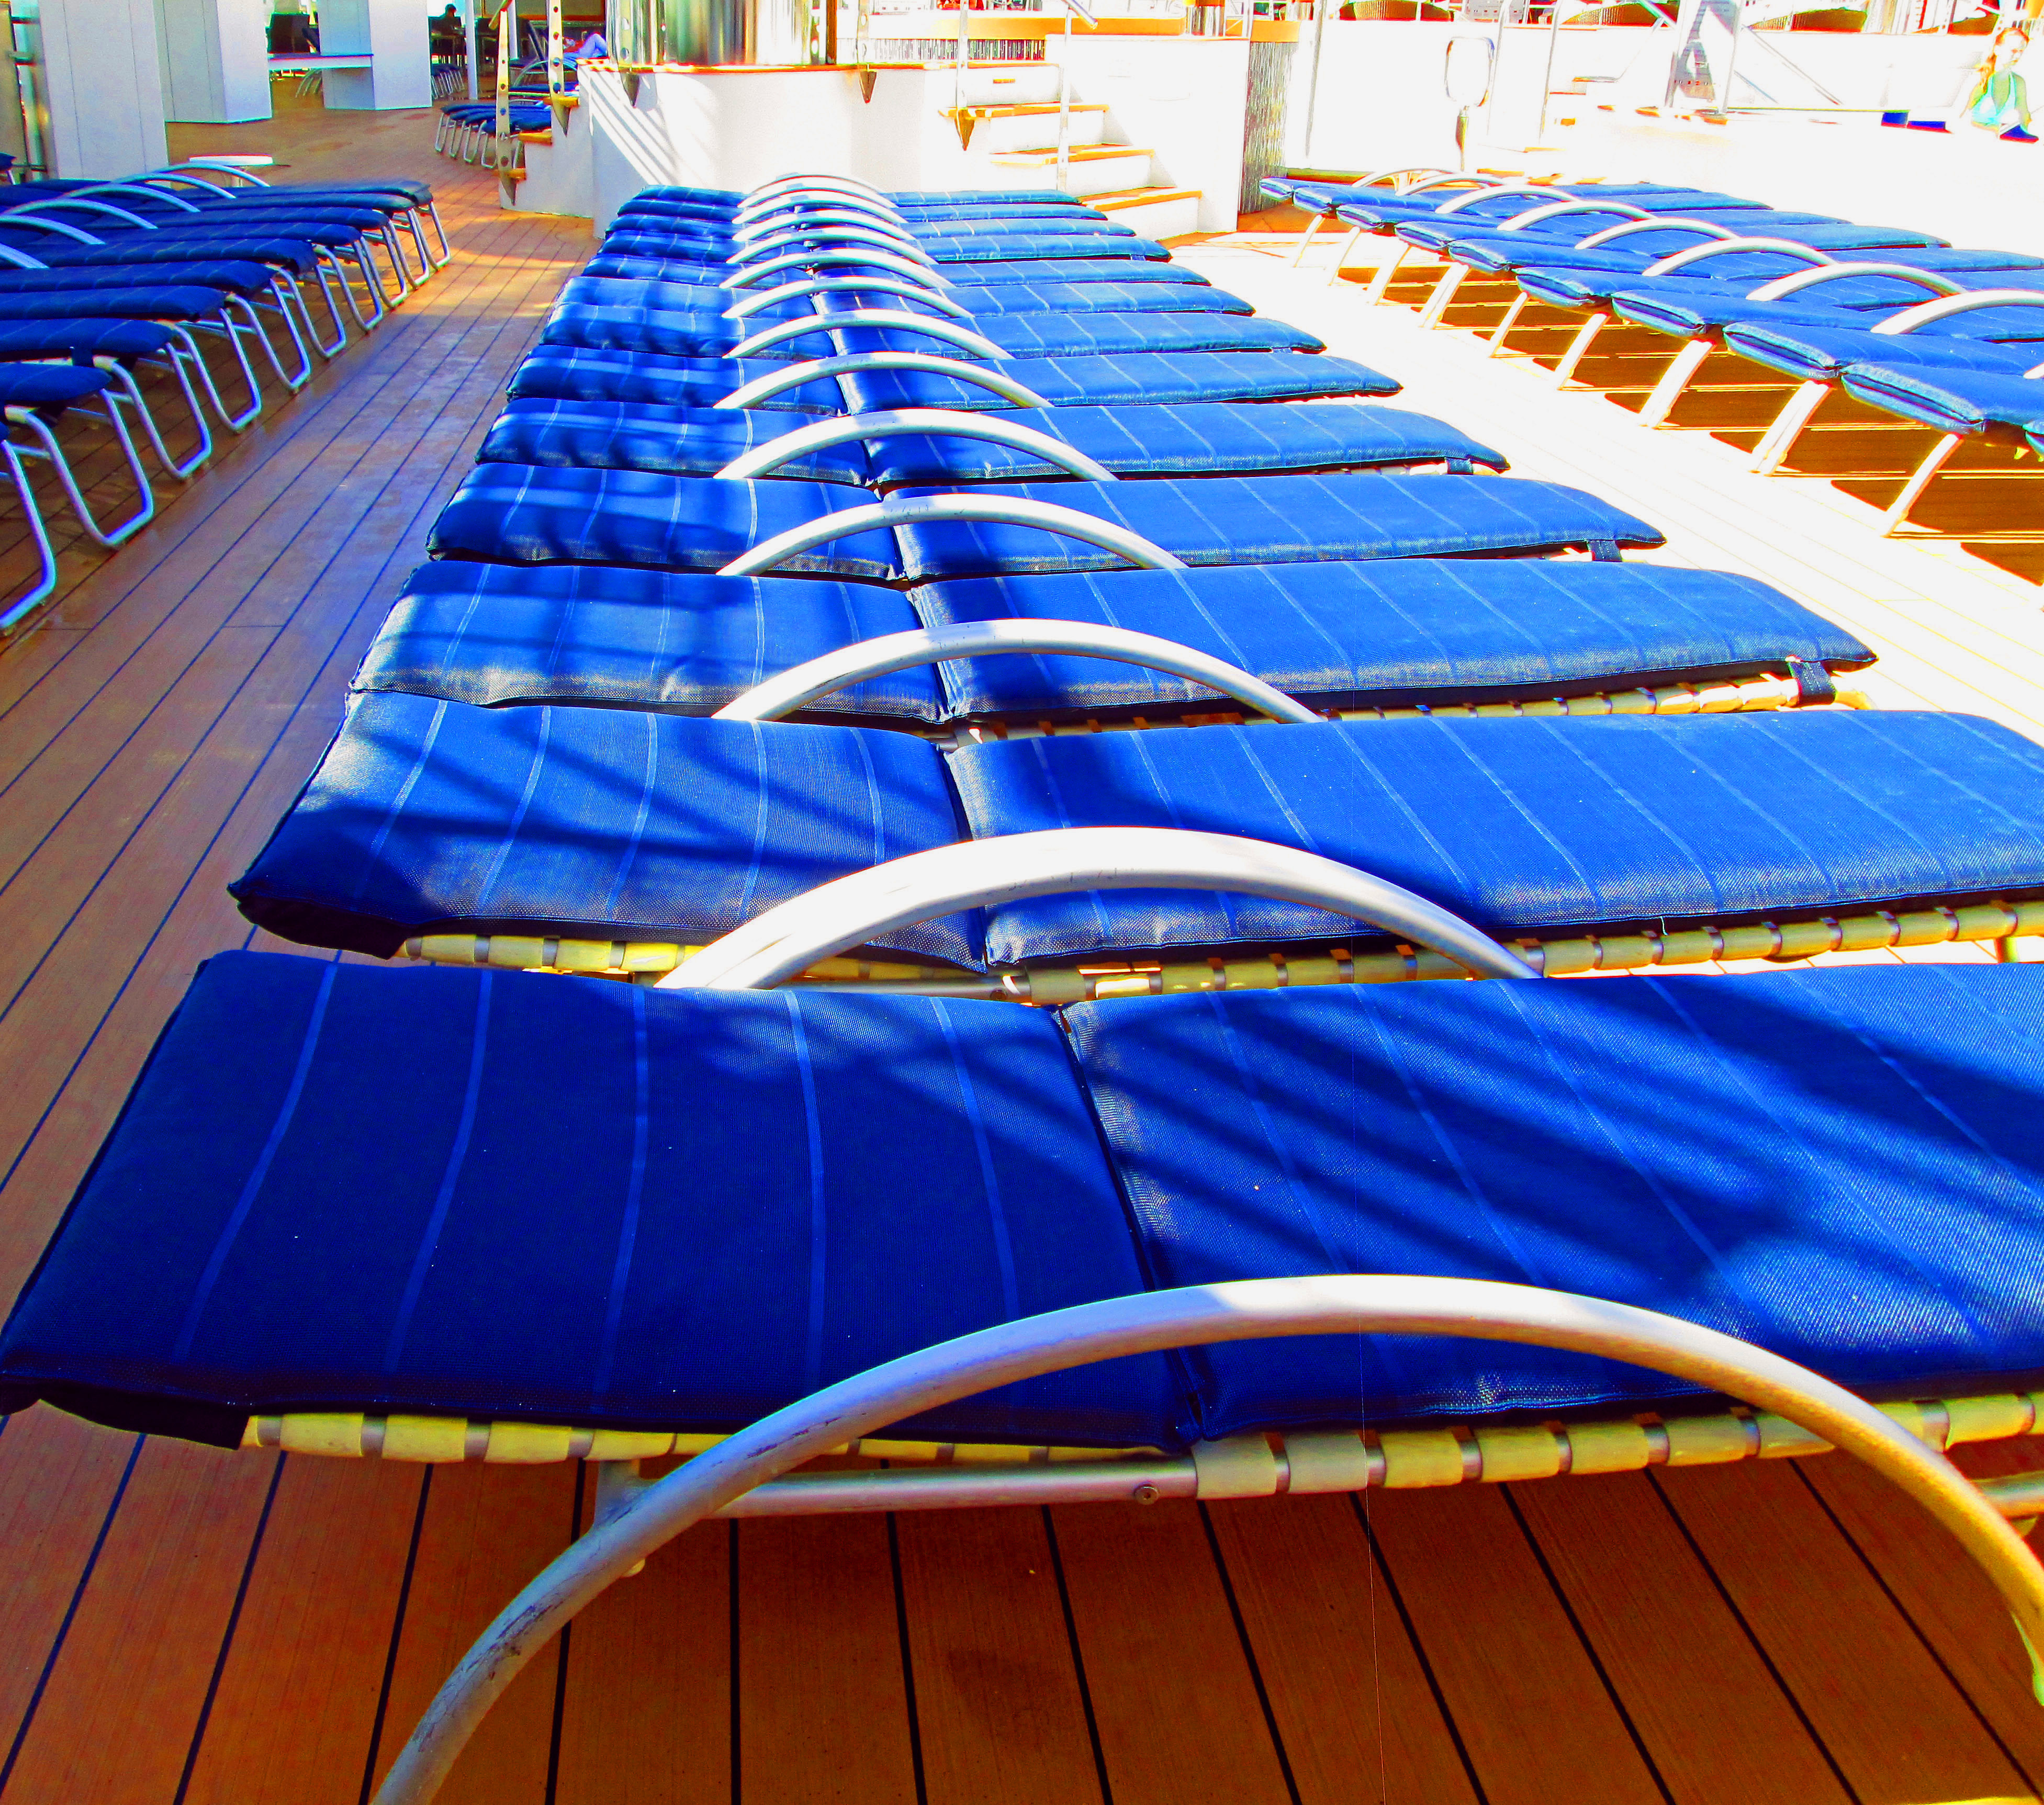 Cruise Ship Lounges Lined Up & Ready For A New Day